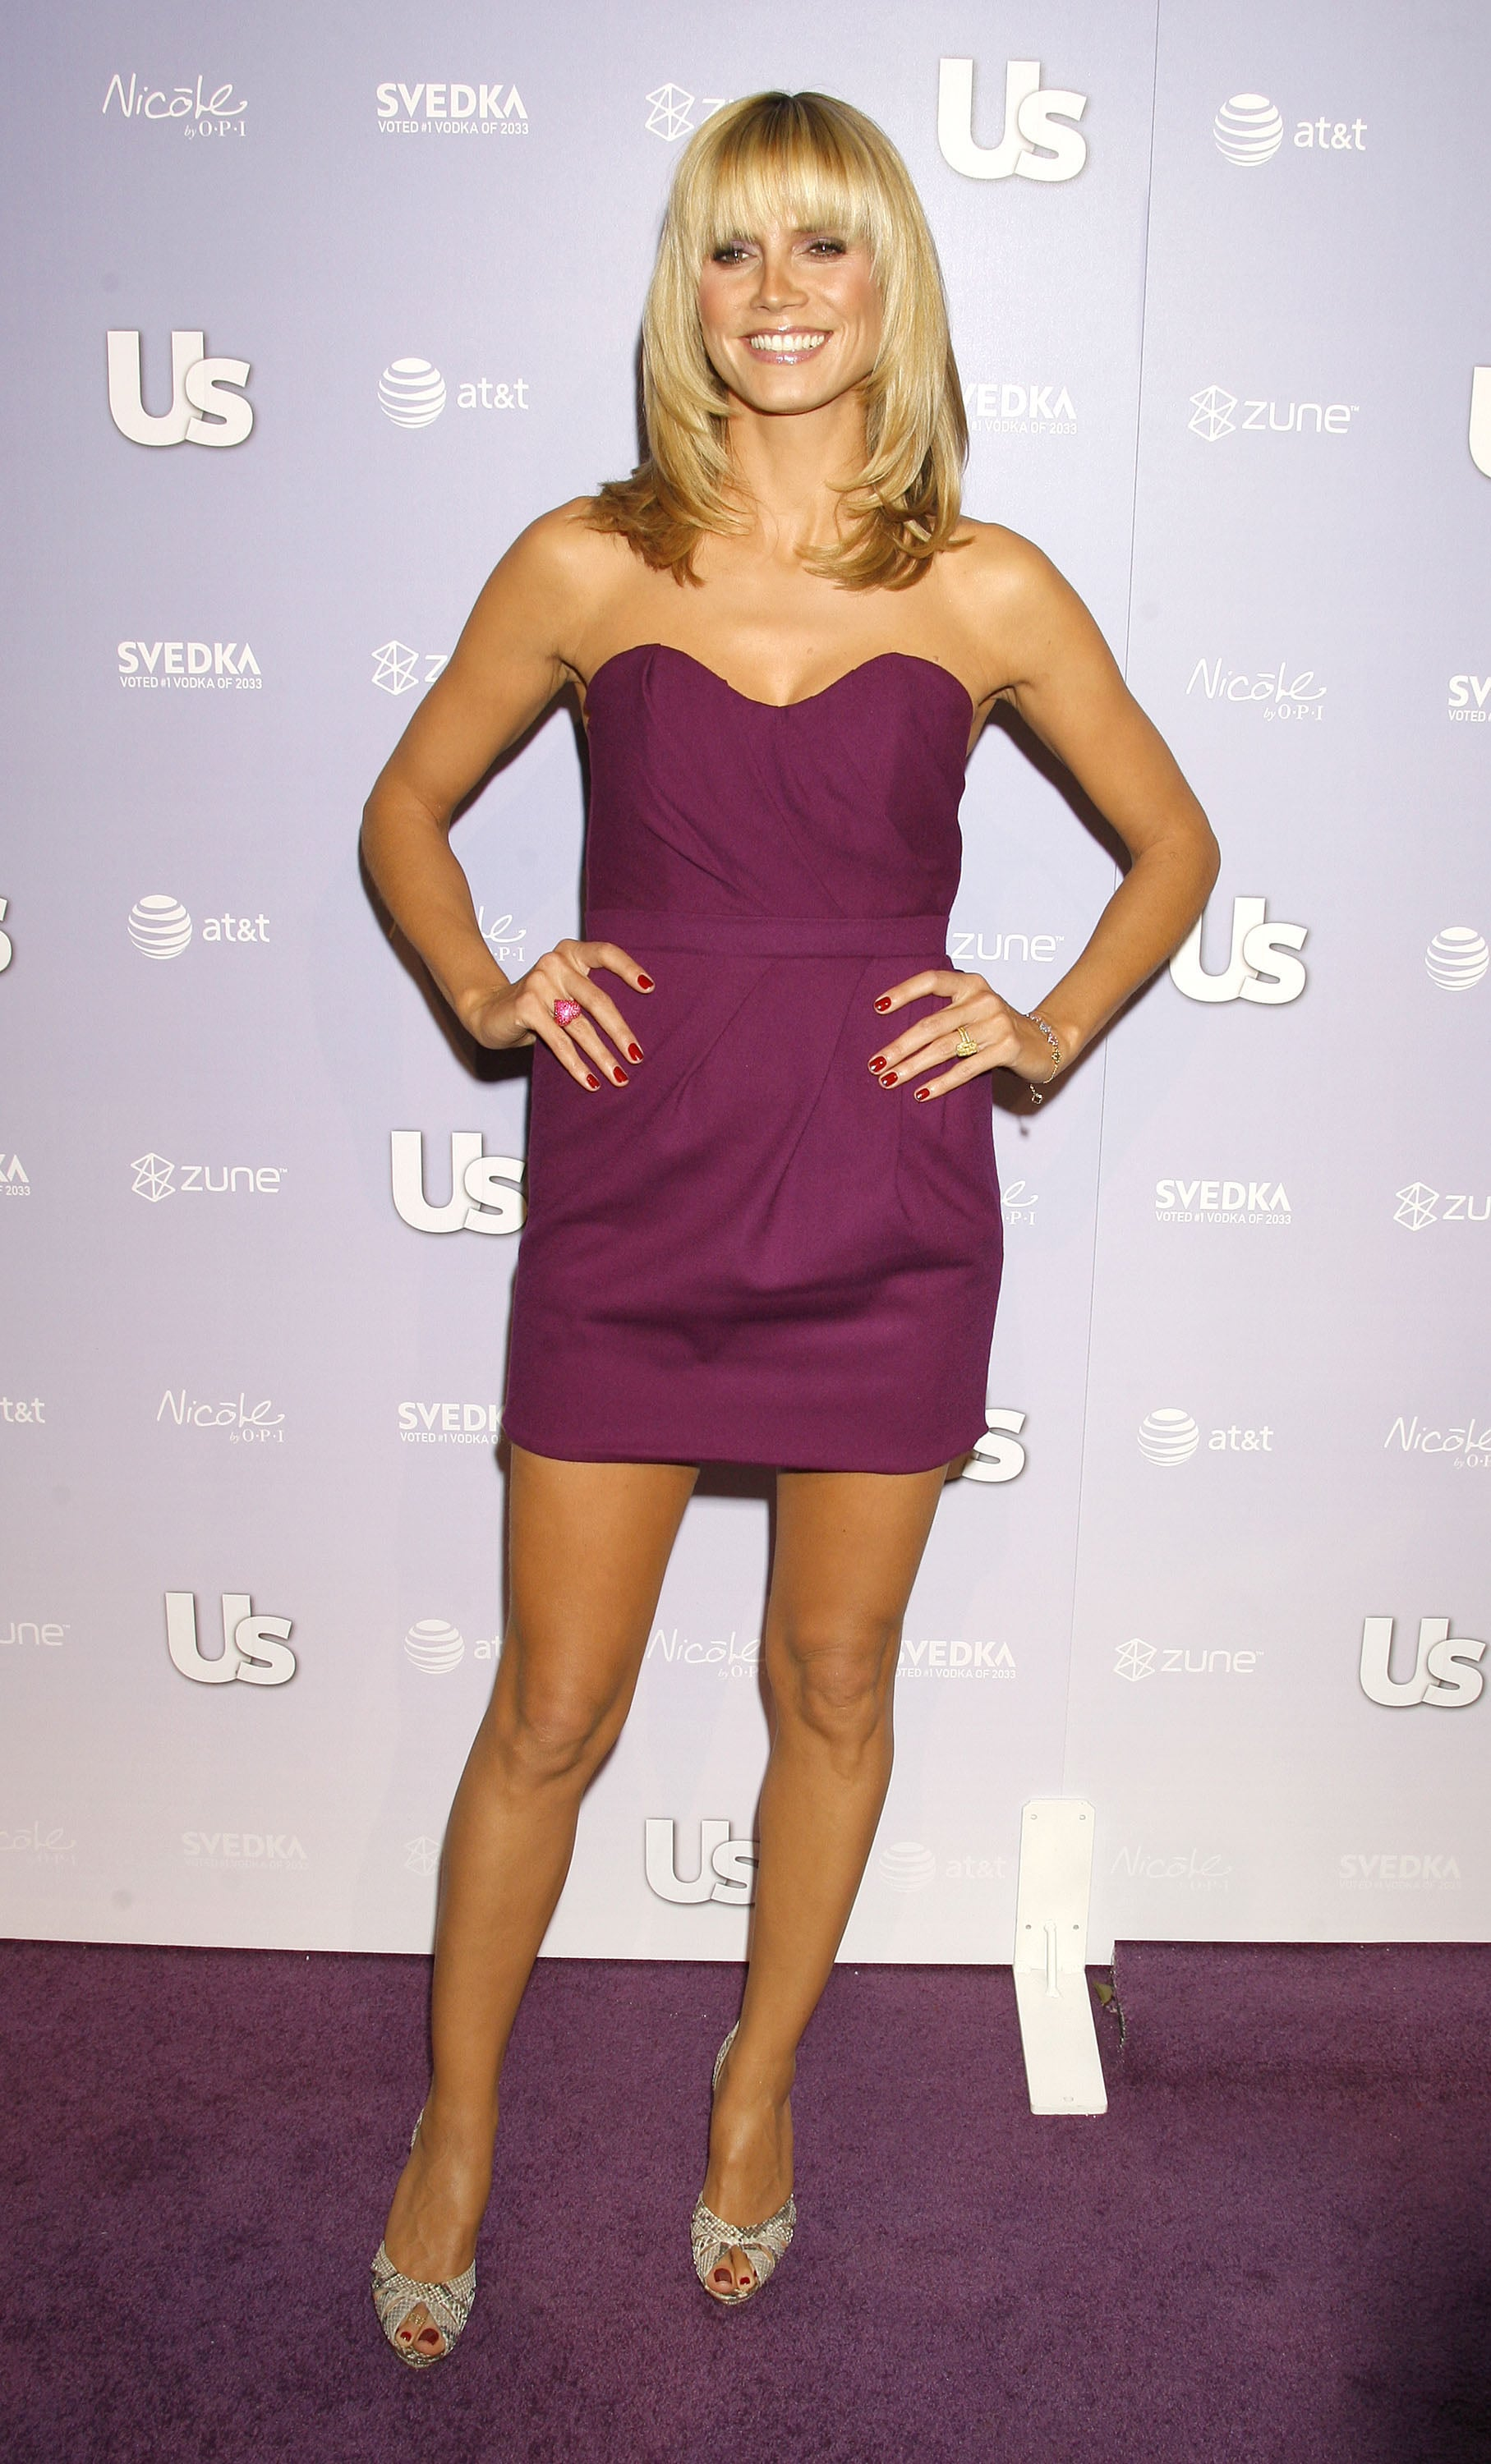 Heidi Klum in a Purple Strapless Mini at Us Weekly's 2008 Hot Hollywood Party